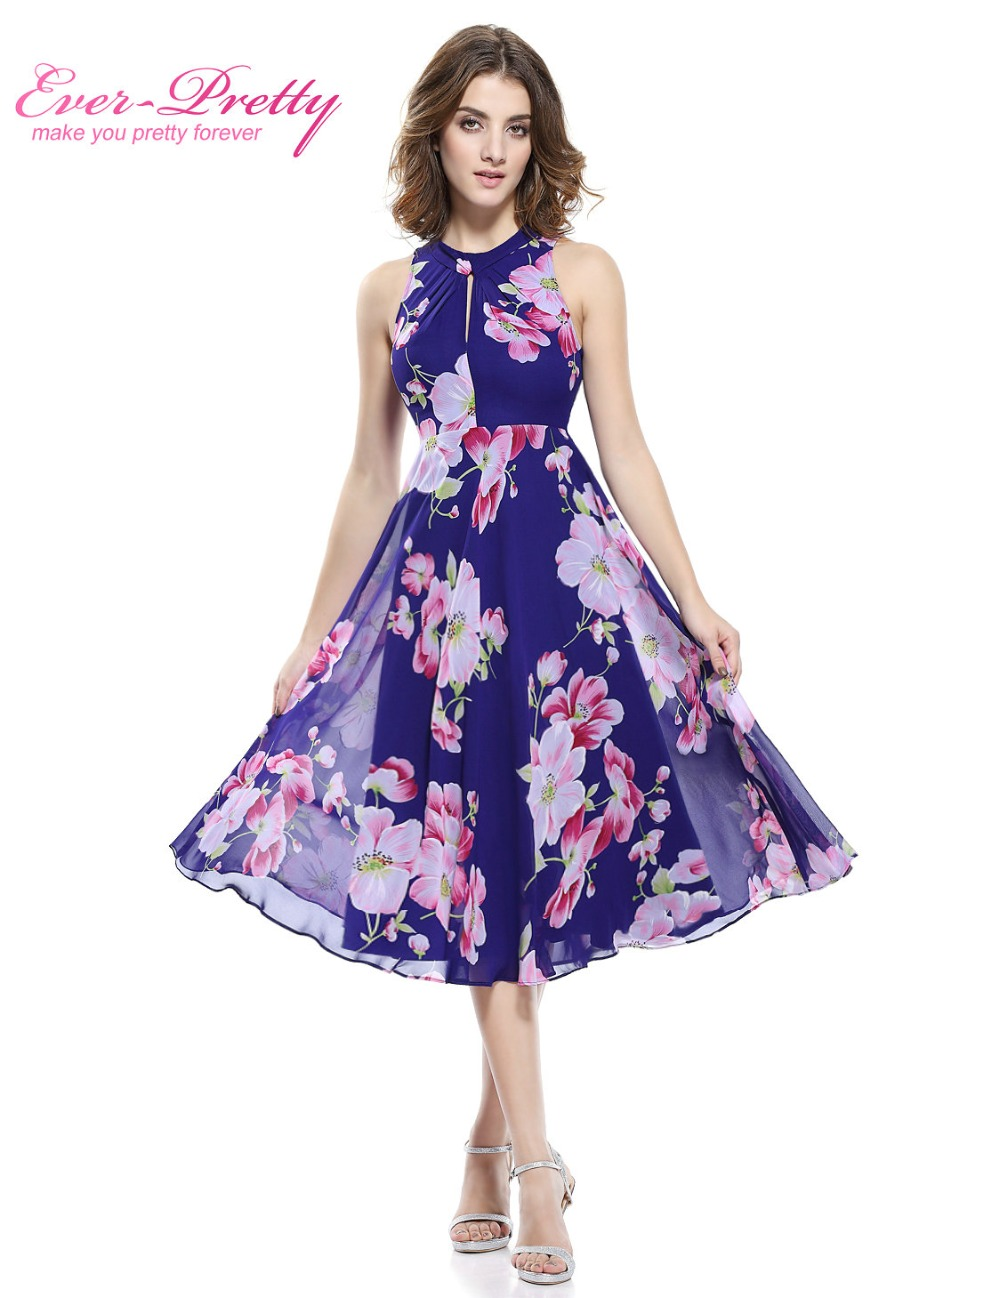 Compare Prices on Floral Print Cocktail Dress- Online Shopping/Buy ...